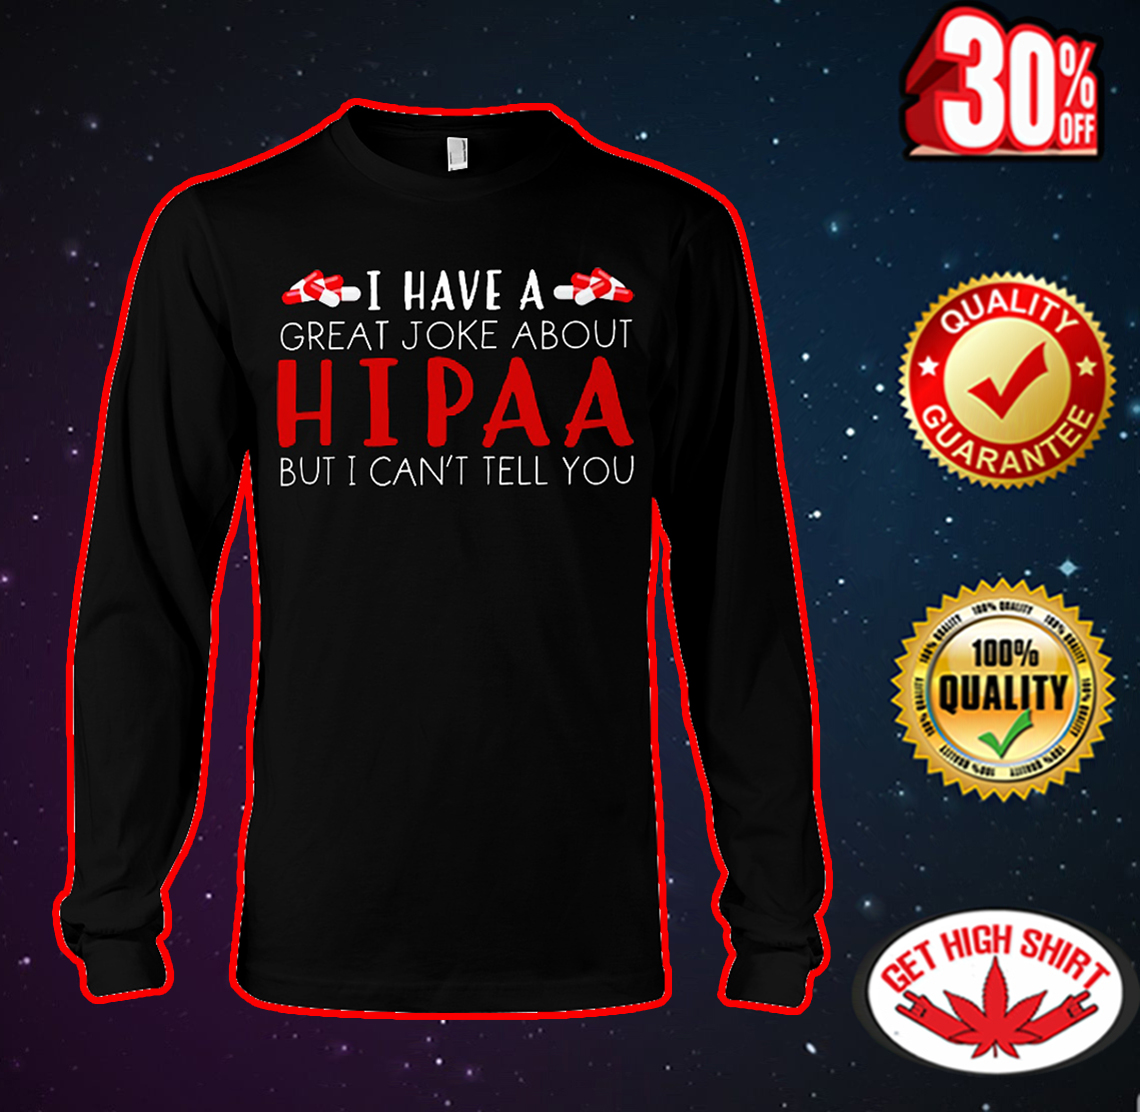 I have a great joke about hipaa but I can't tell you long sleeve tee